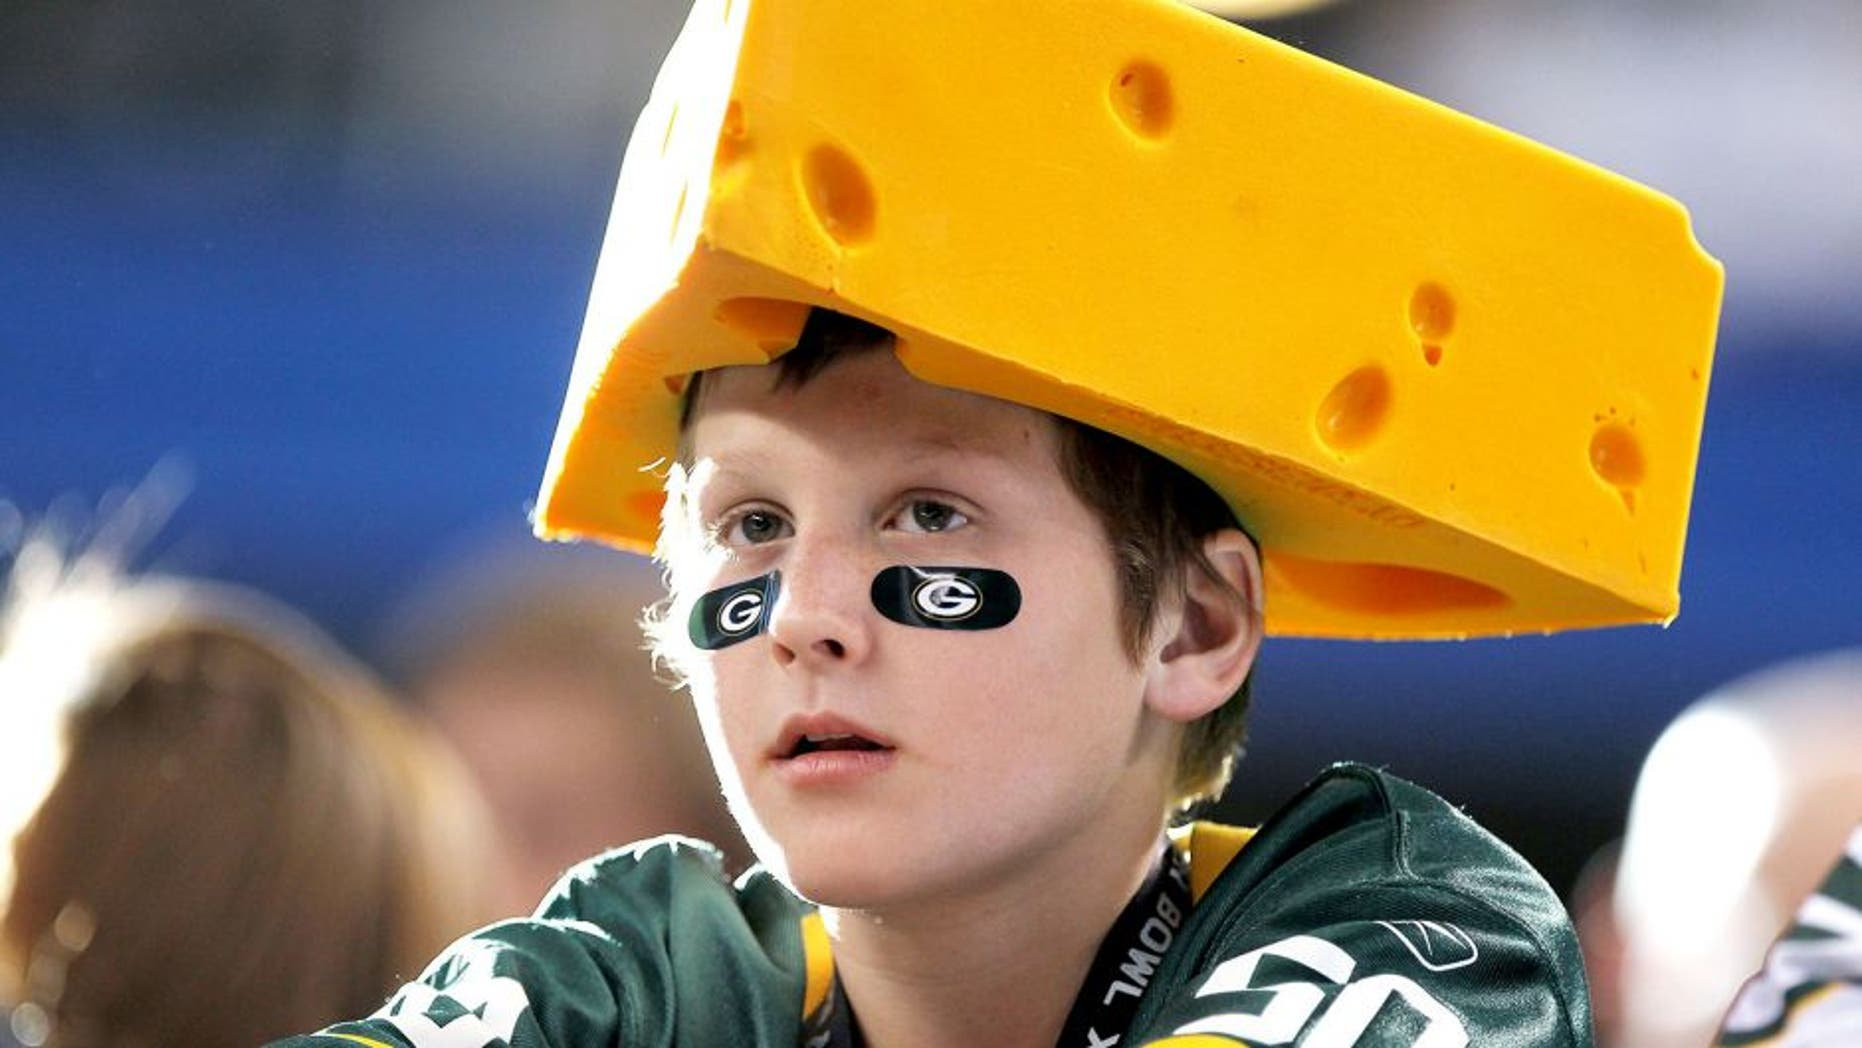 ARLINGTON, TX - FEBRUARY 06: A Green Bay Packers' fan waits before the Packers take on the Pittsburgh Steelers in Super Bowl XLV at Cowboys Stadium on February 6, 2011 in Arlington, Texas. (Photo by Doug Pensinger/Getty Images)